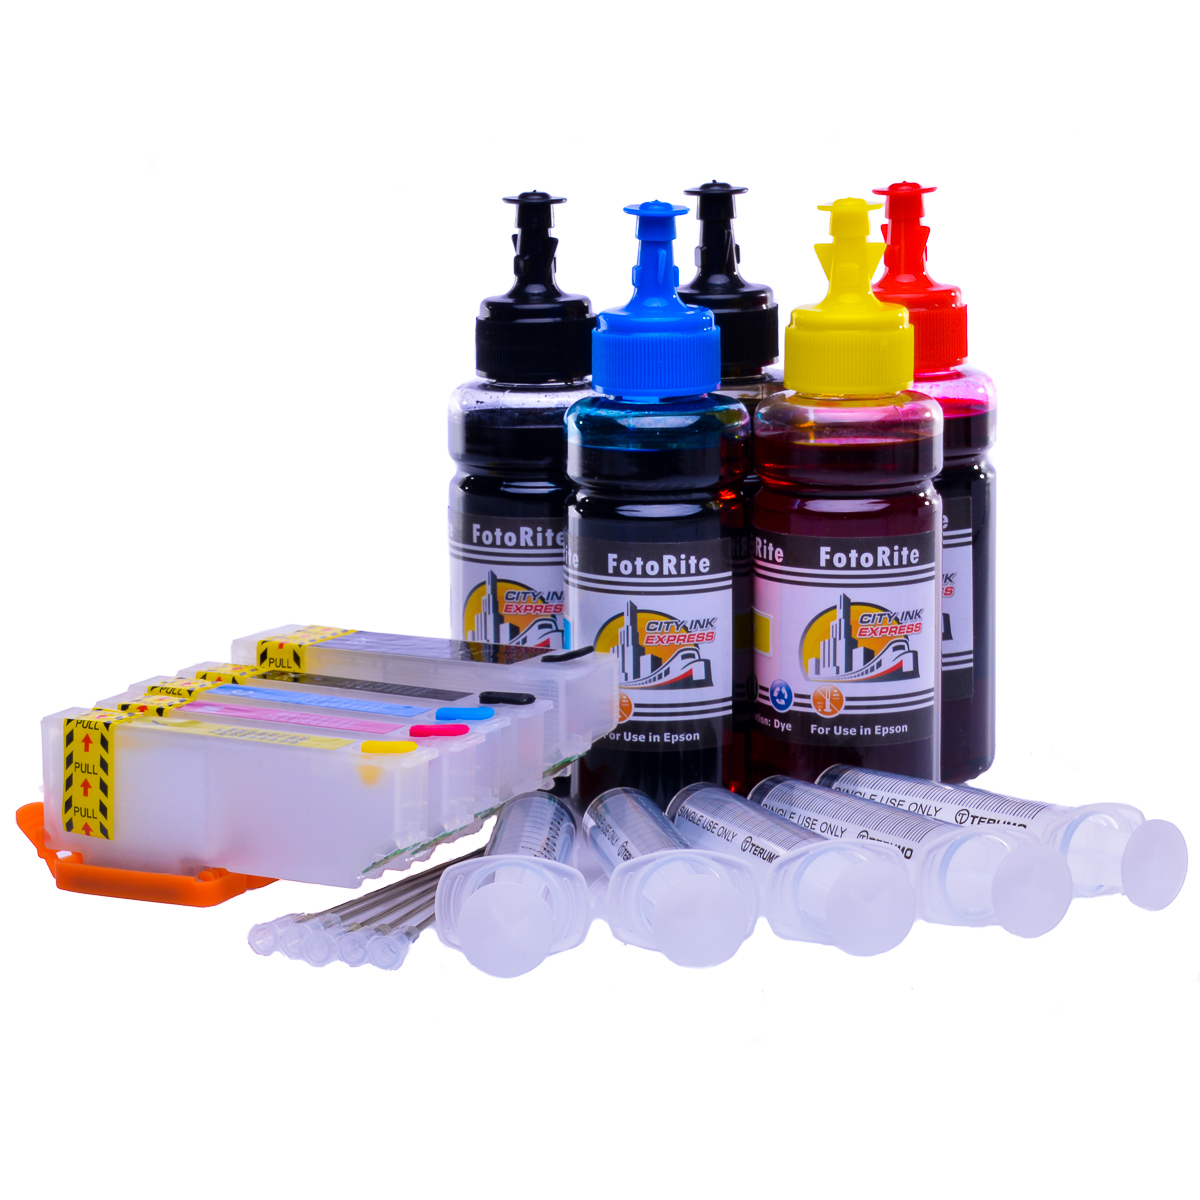 Multipack Cheap printer cartridges for Epson XP-610 | Refillable dye and pigment ink